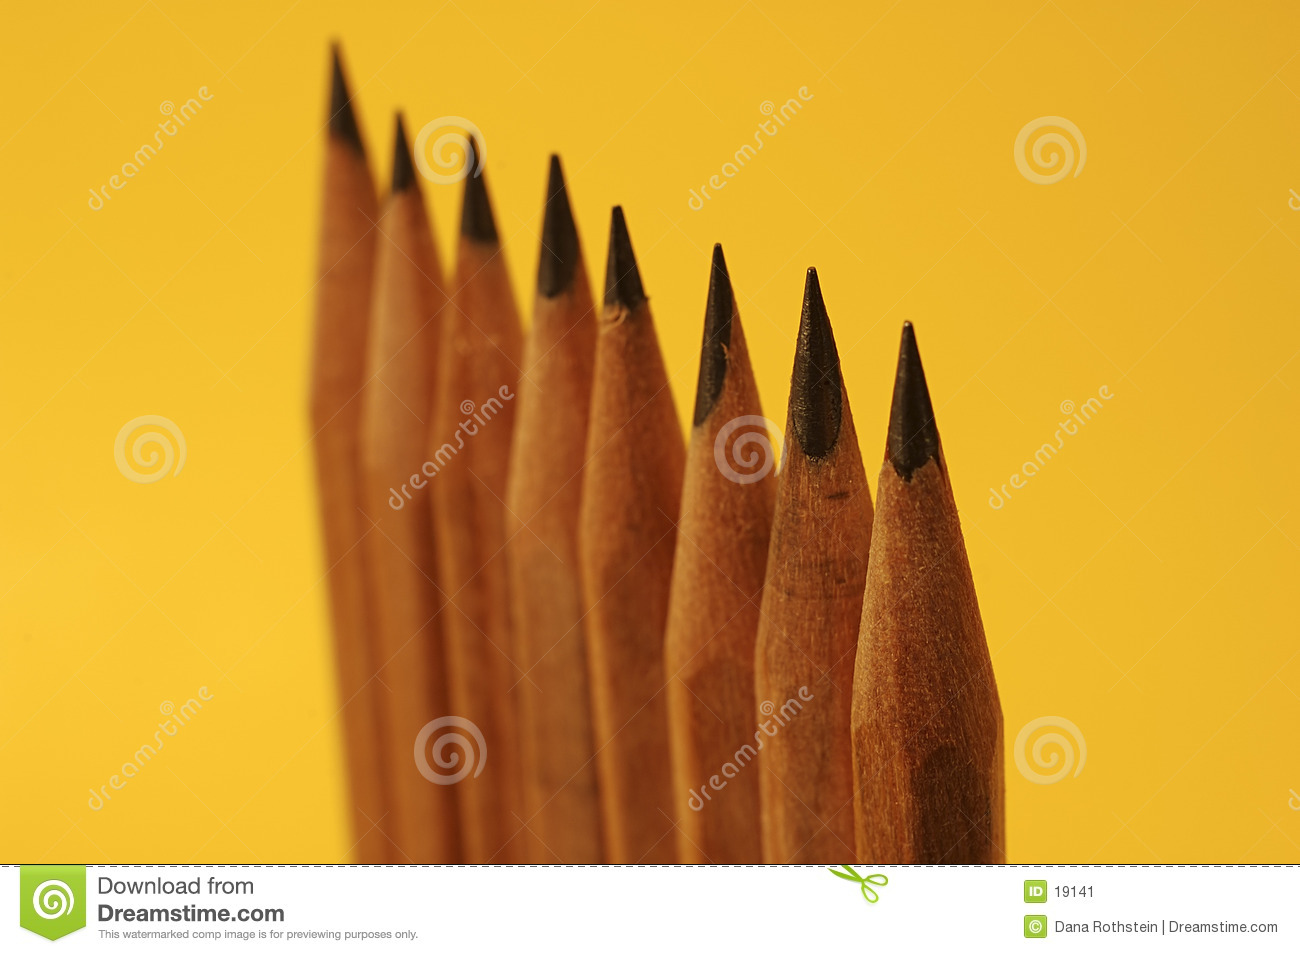 Upright Pencils